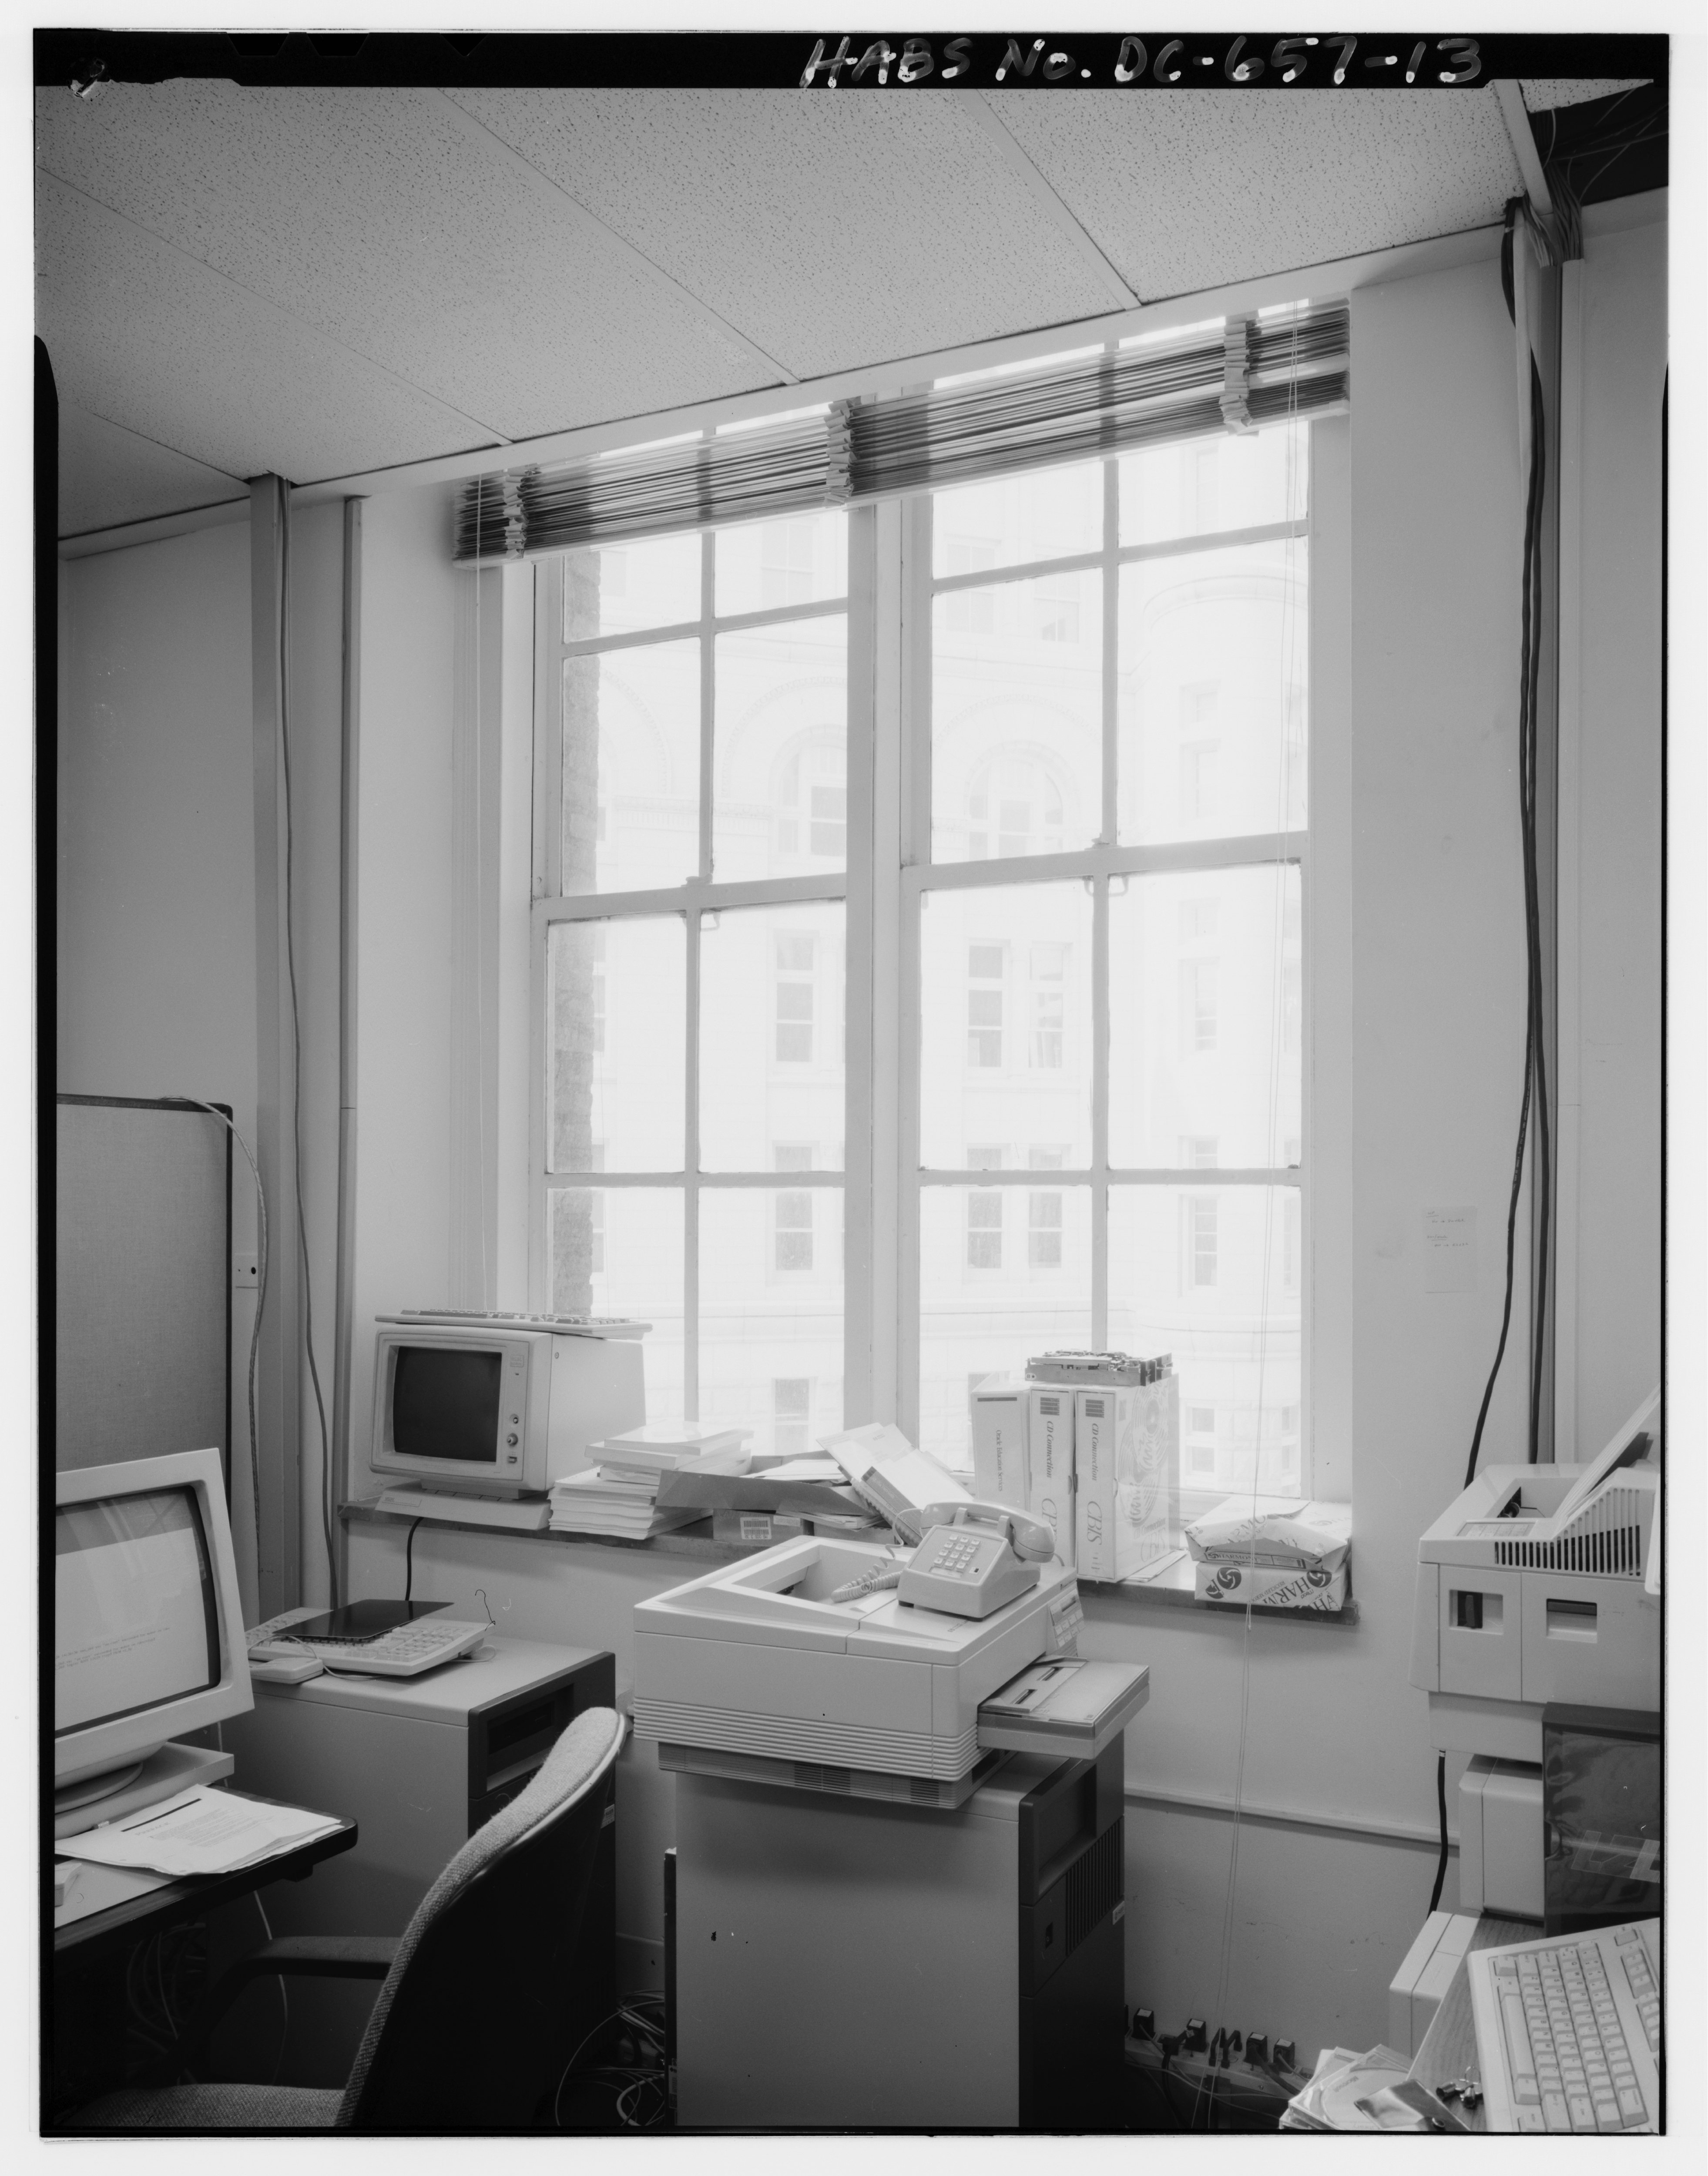 Late twentieth century photograph of an office space inside the IRS building.